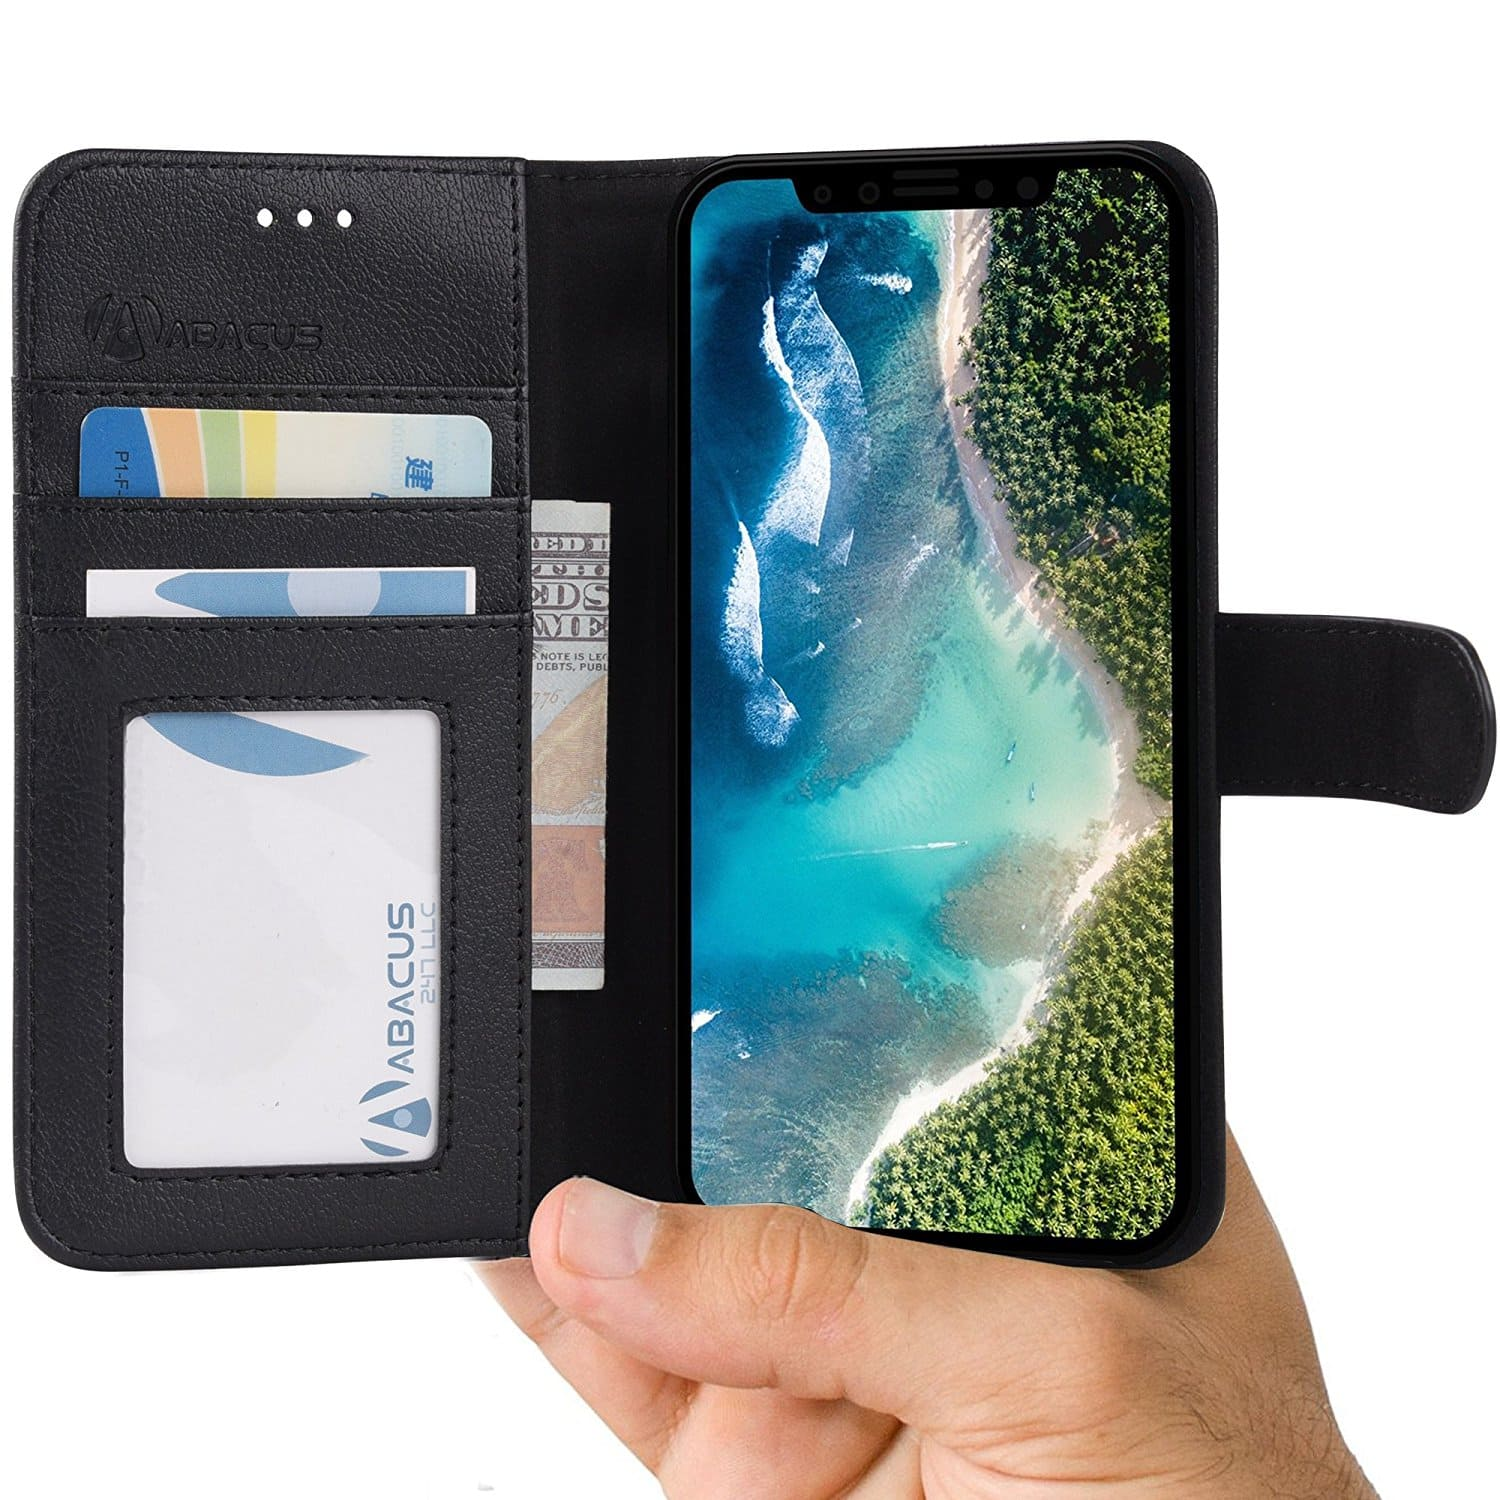 Abacus24-7 iPhone X Case, Leather Wallet $2.98 + free shipping